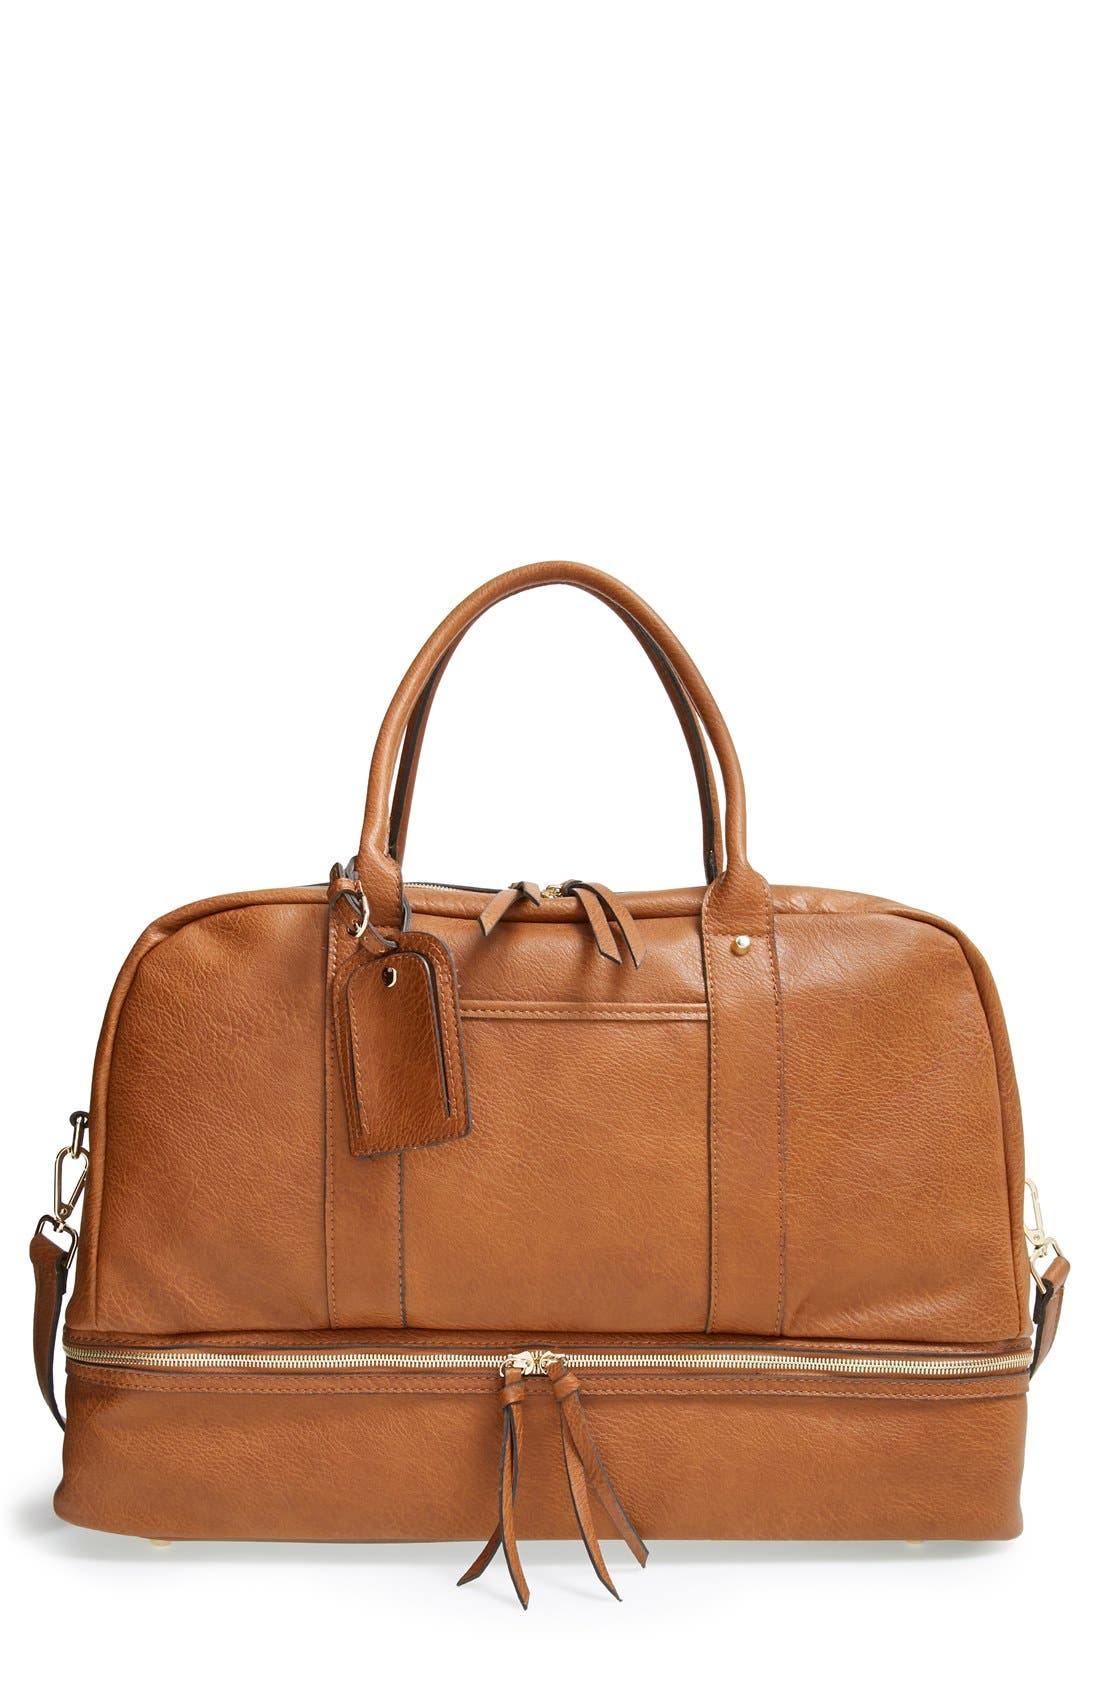 SOLE SOCIETY Mason Weekend Bag, Main, color, COGNAC